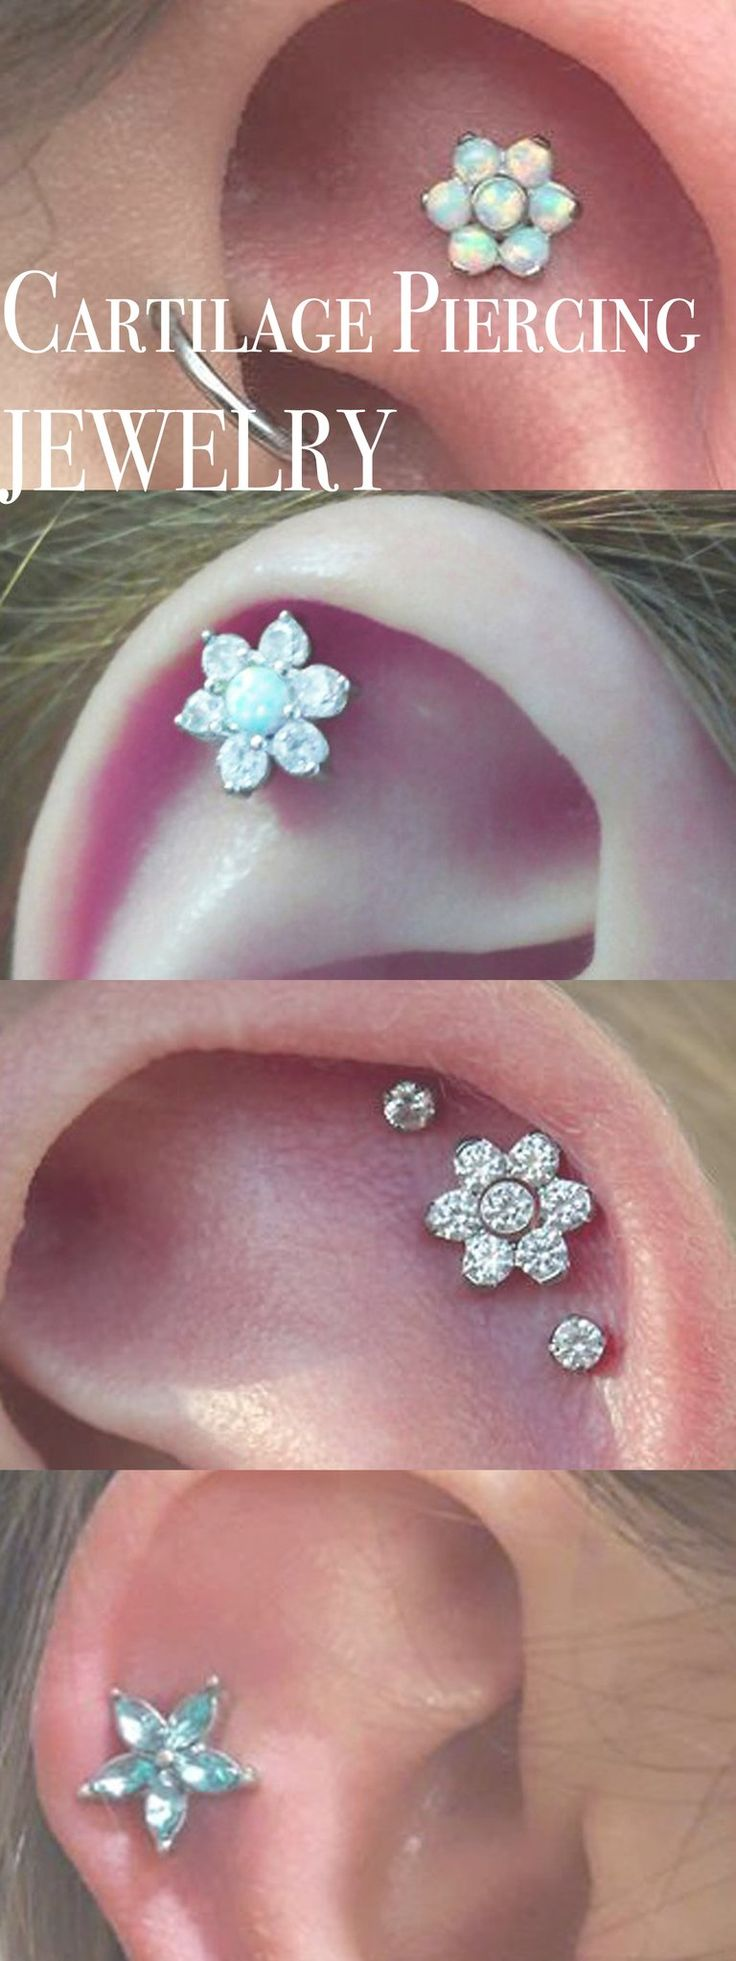 Multiple Ear Piercing Ideas for Cartilage Jewelry - Crystal Opal Flower Constellation Stud - MyBodiArt.com